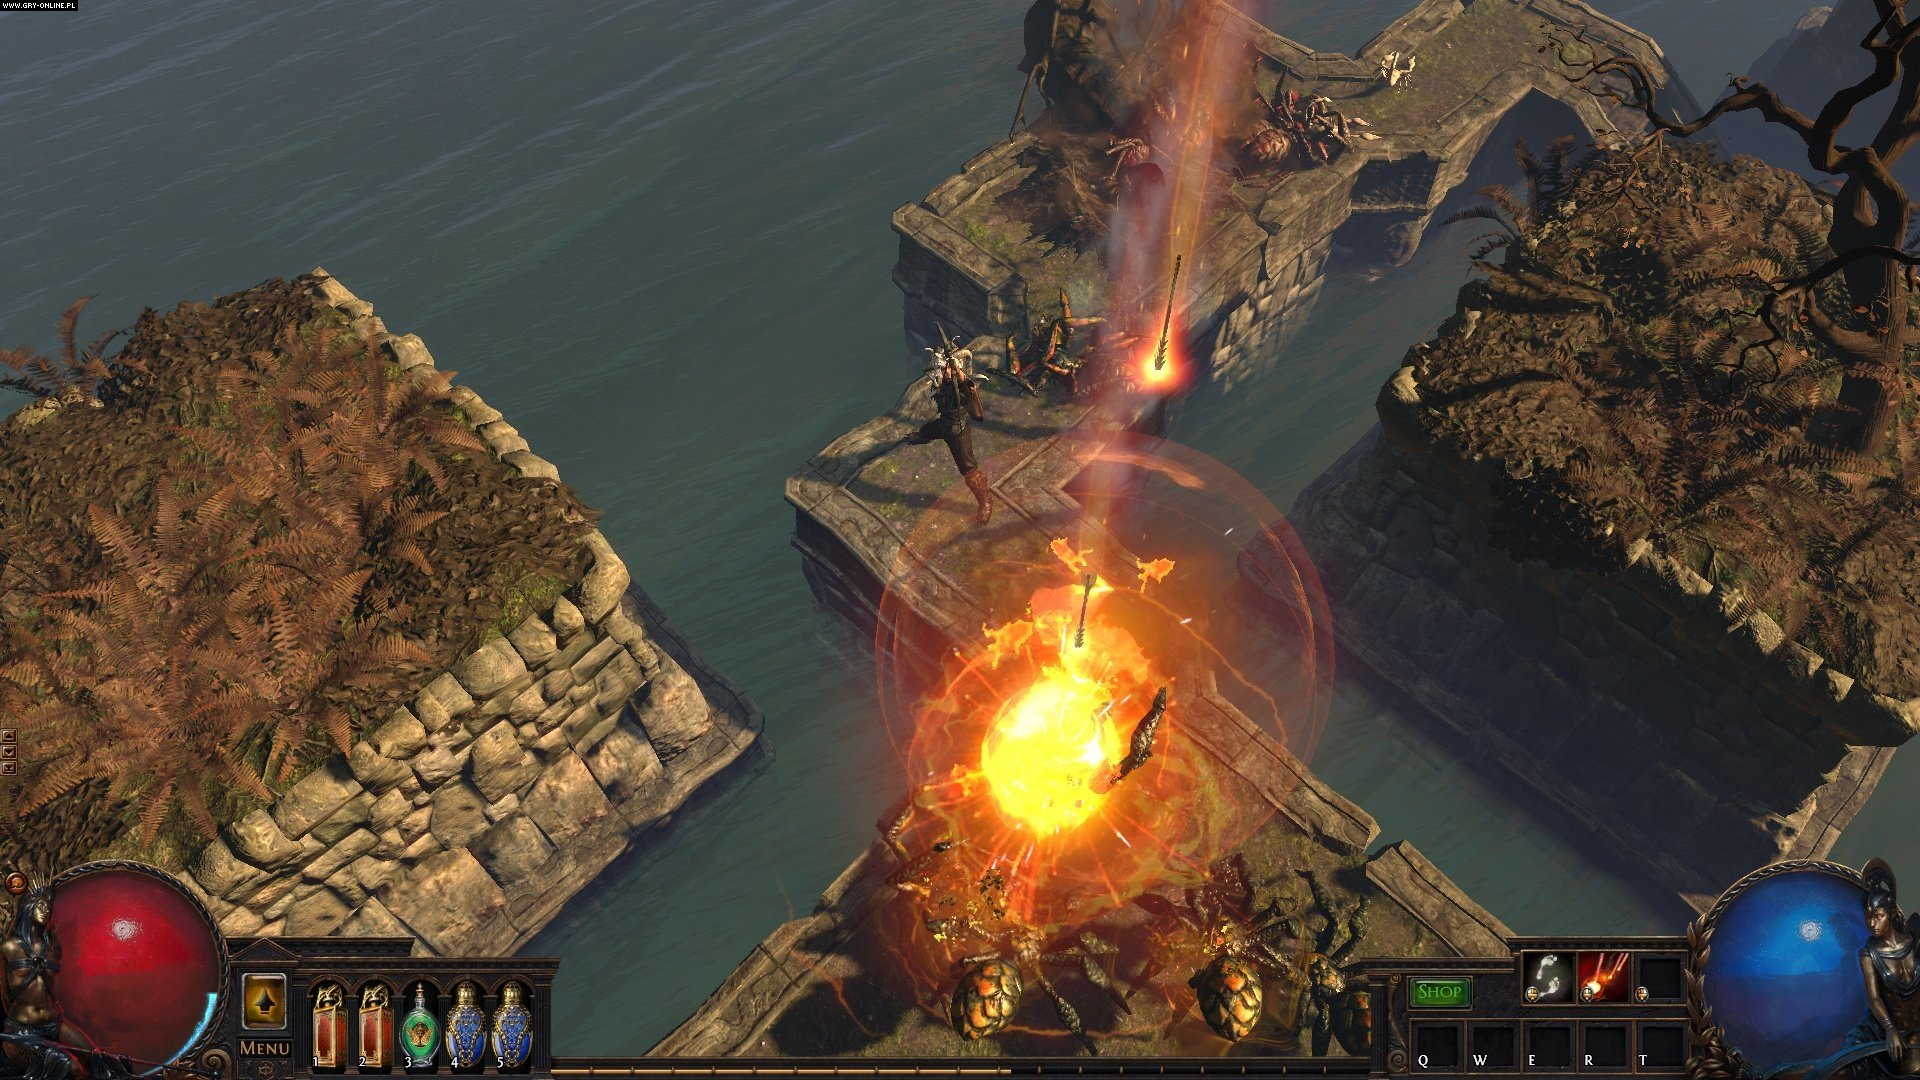 Path of Exile PC, XONE Games Image 3/69, Grinding Gear Games